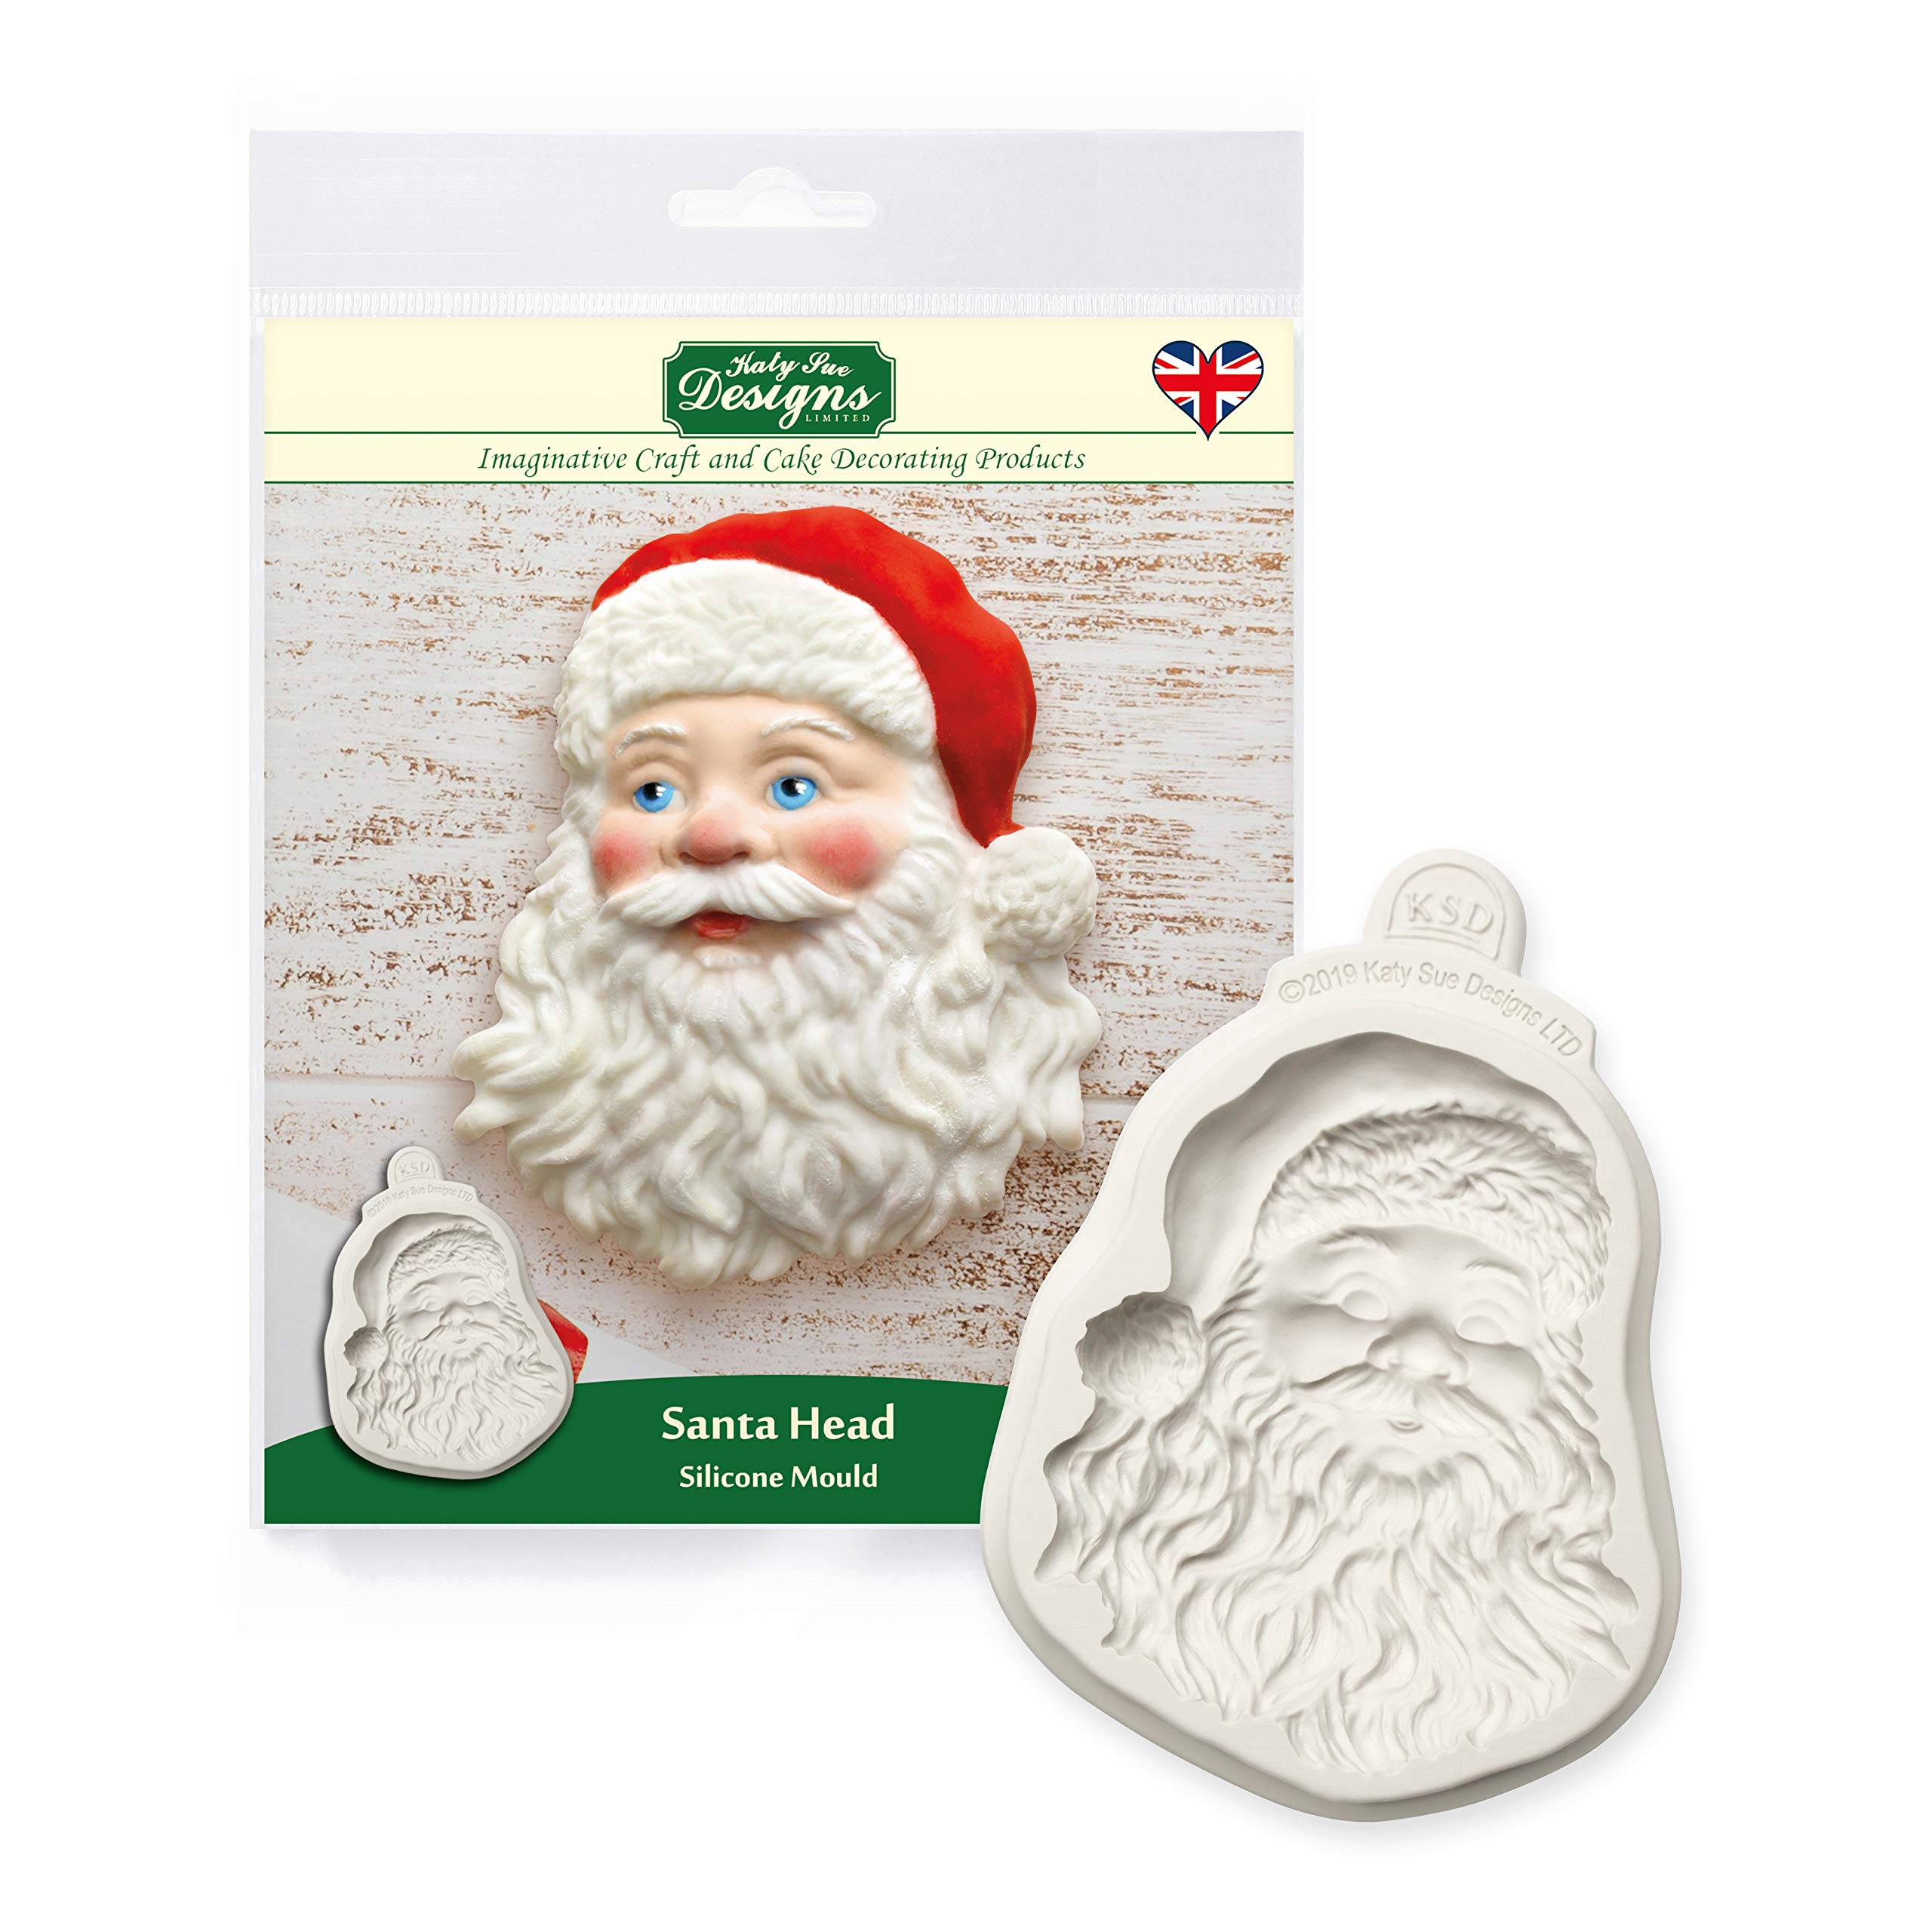 Katy Sue Santa Head Silicone Mold for Cake Decorating, Crafts, Cupcakes, Sugarcraft, Cookies, Candies, Cards and Clay, Food Safe Approved, Made in The UK